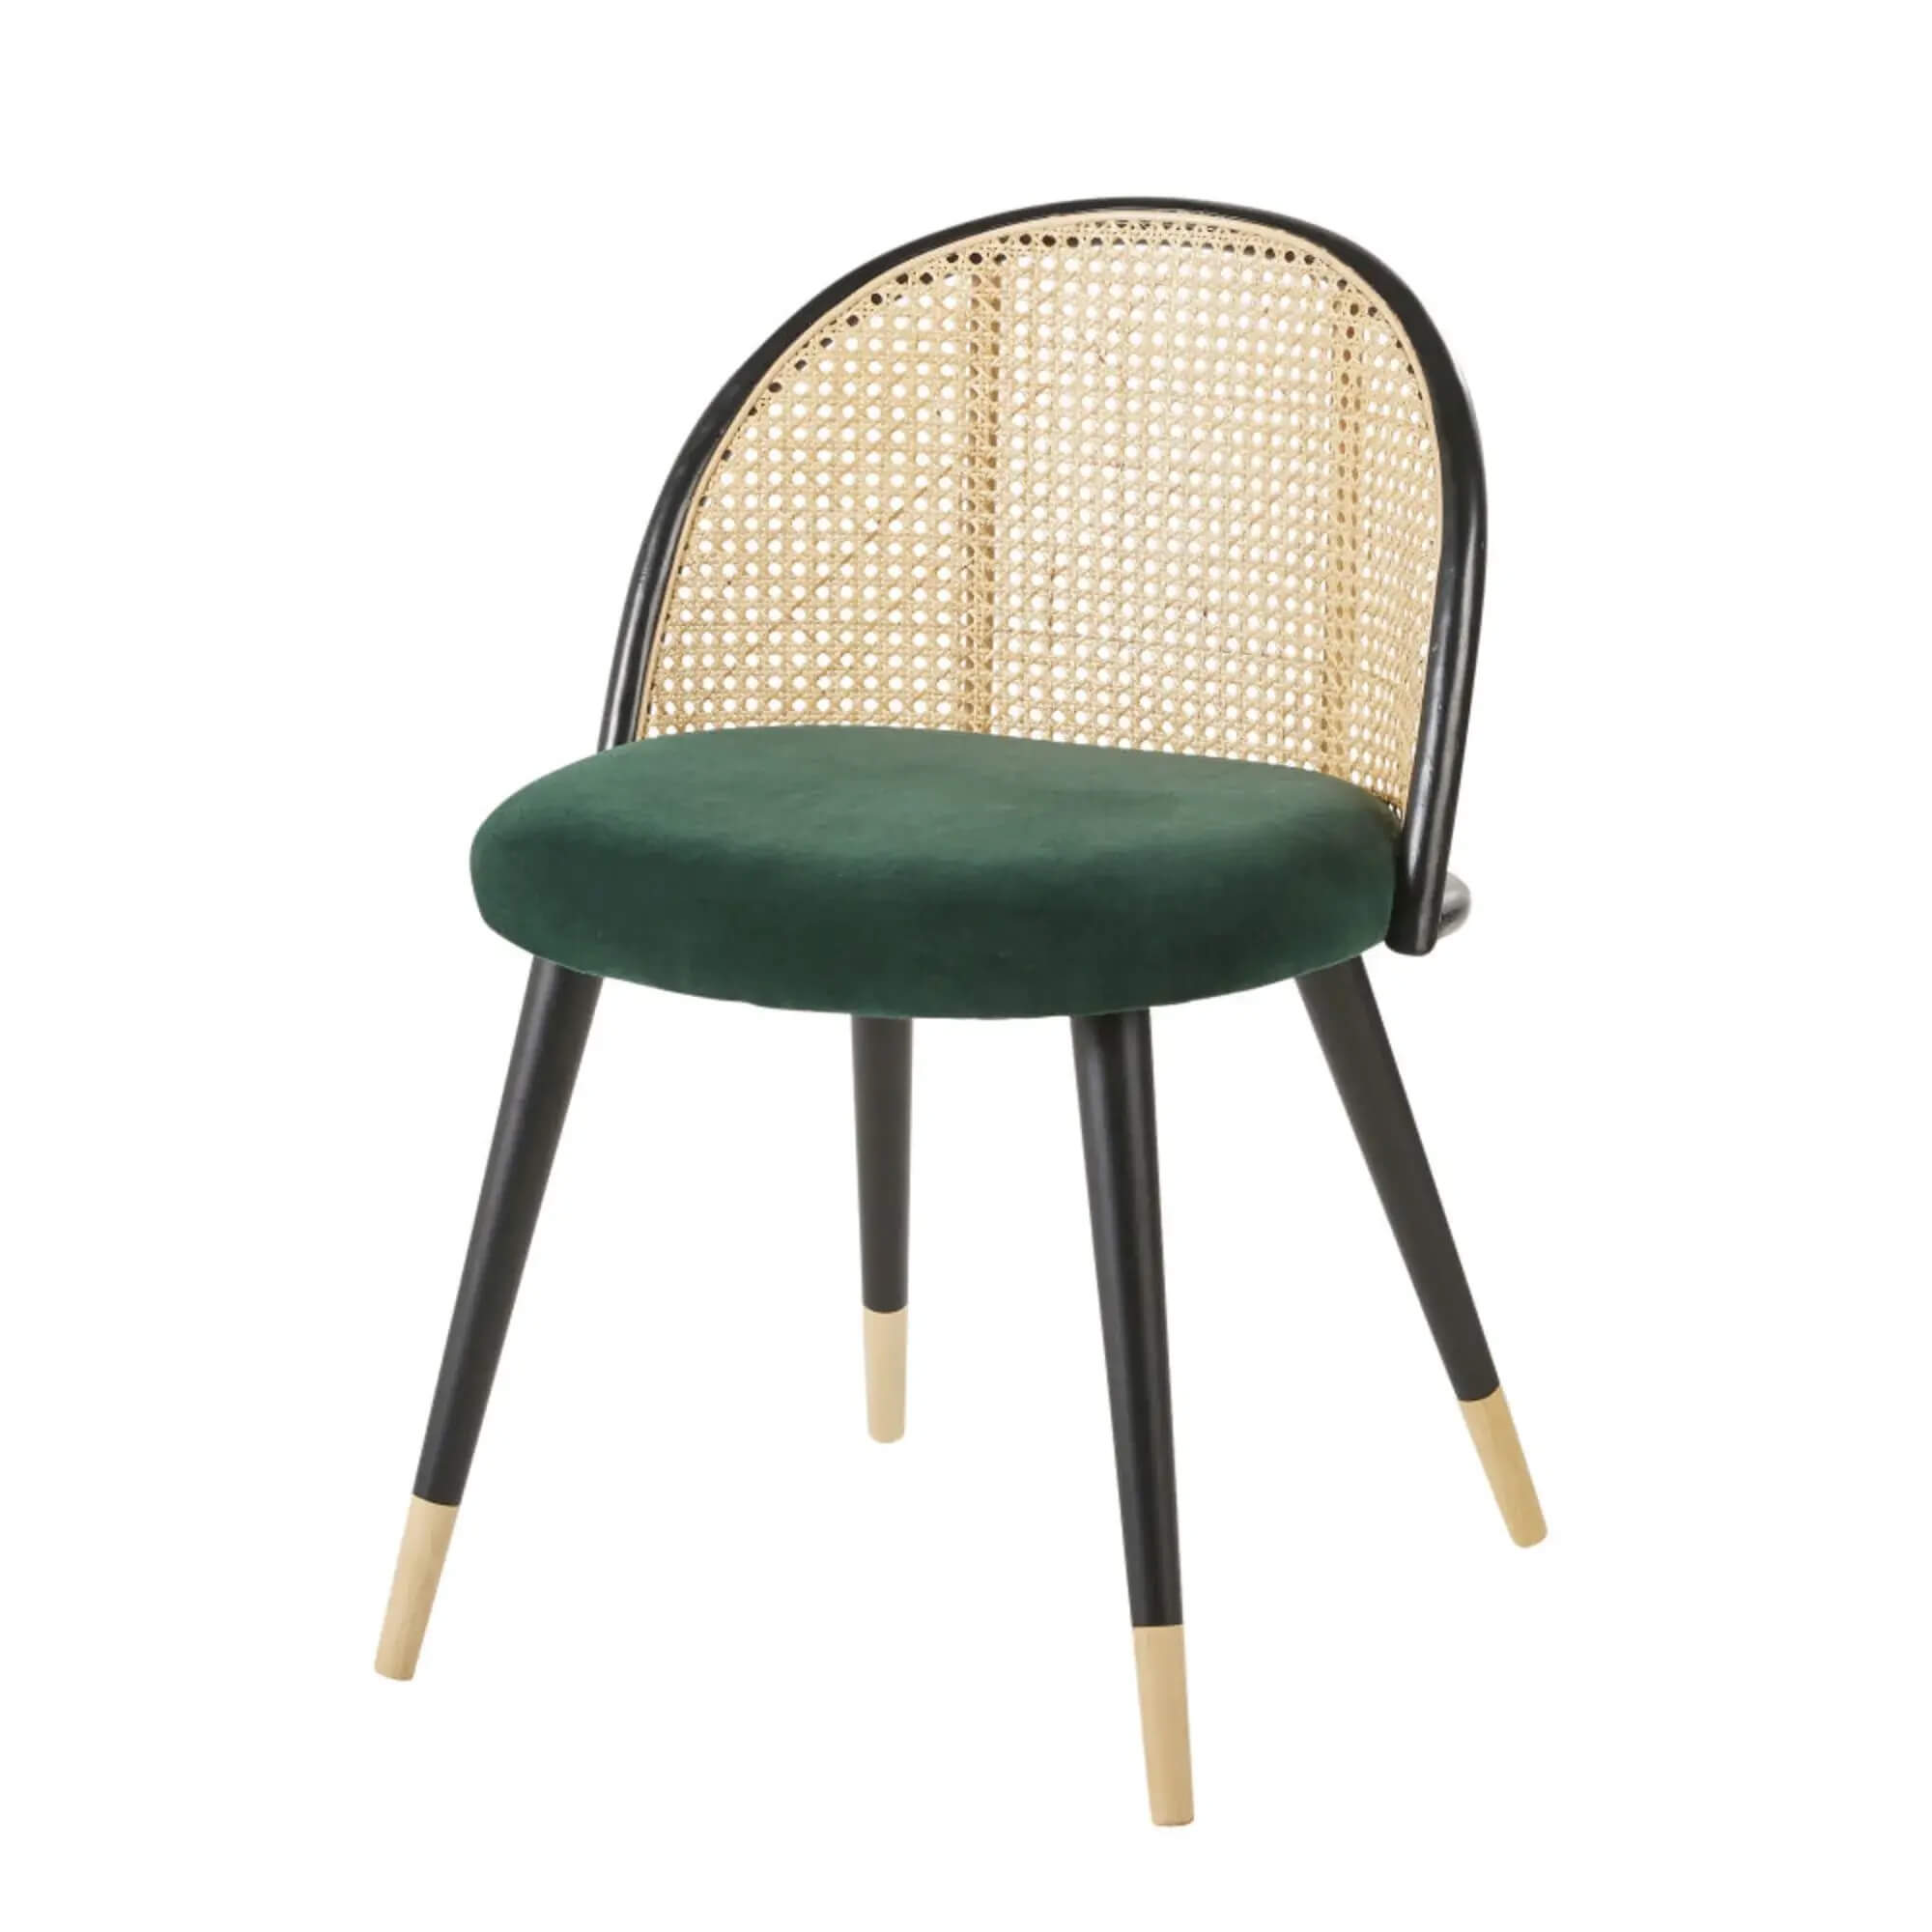 MAURICETTE – Chaise vintage